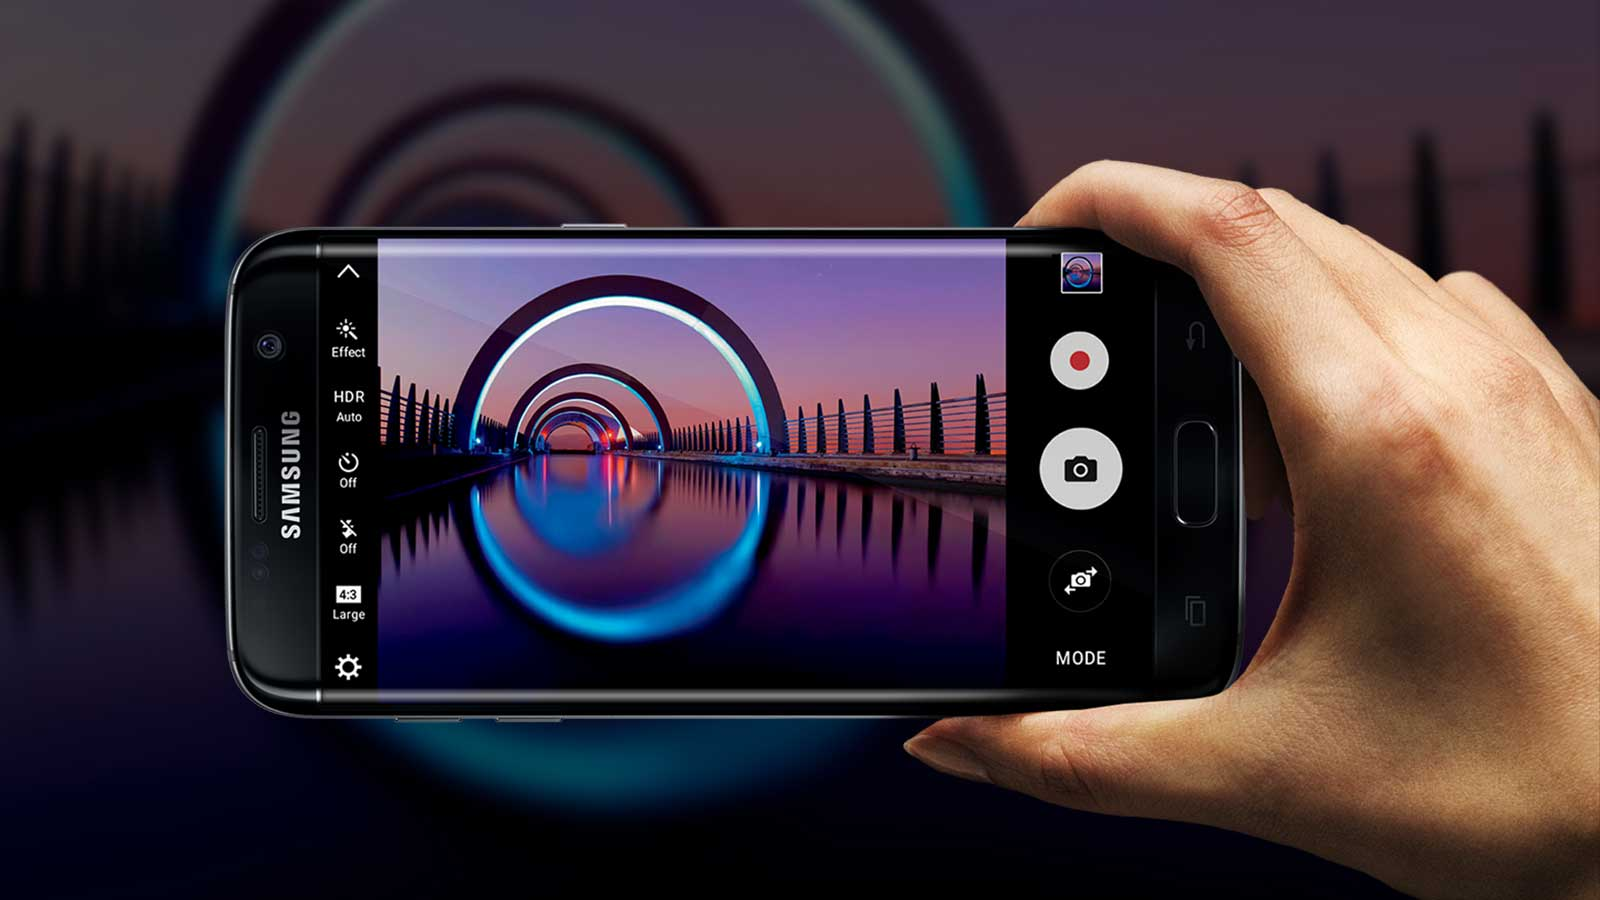 SAMSUNG'S GALAXY S7 IS CONSUMER REPORTS' TOP SMARTPHONE